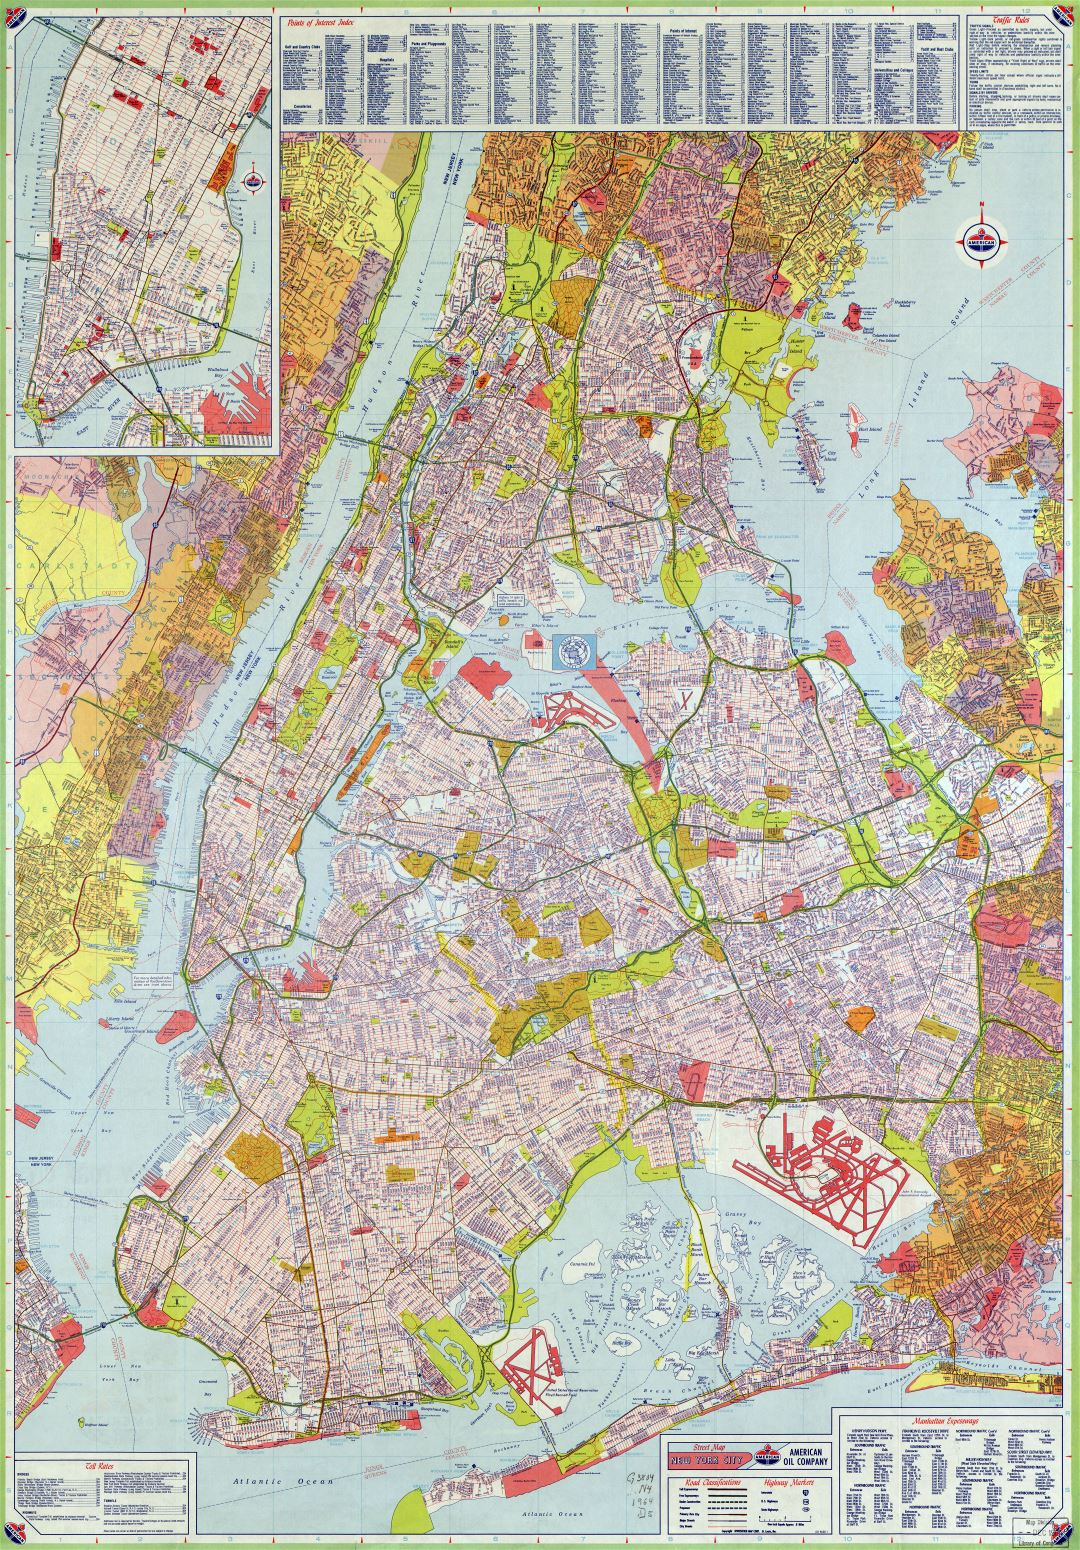 Large scale detailed street map of New York city - 1964